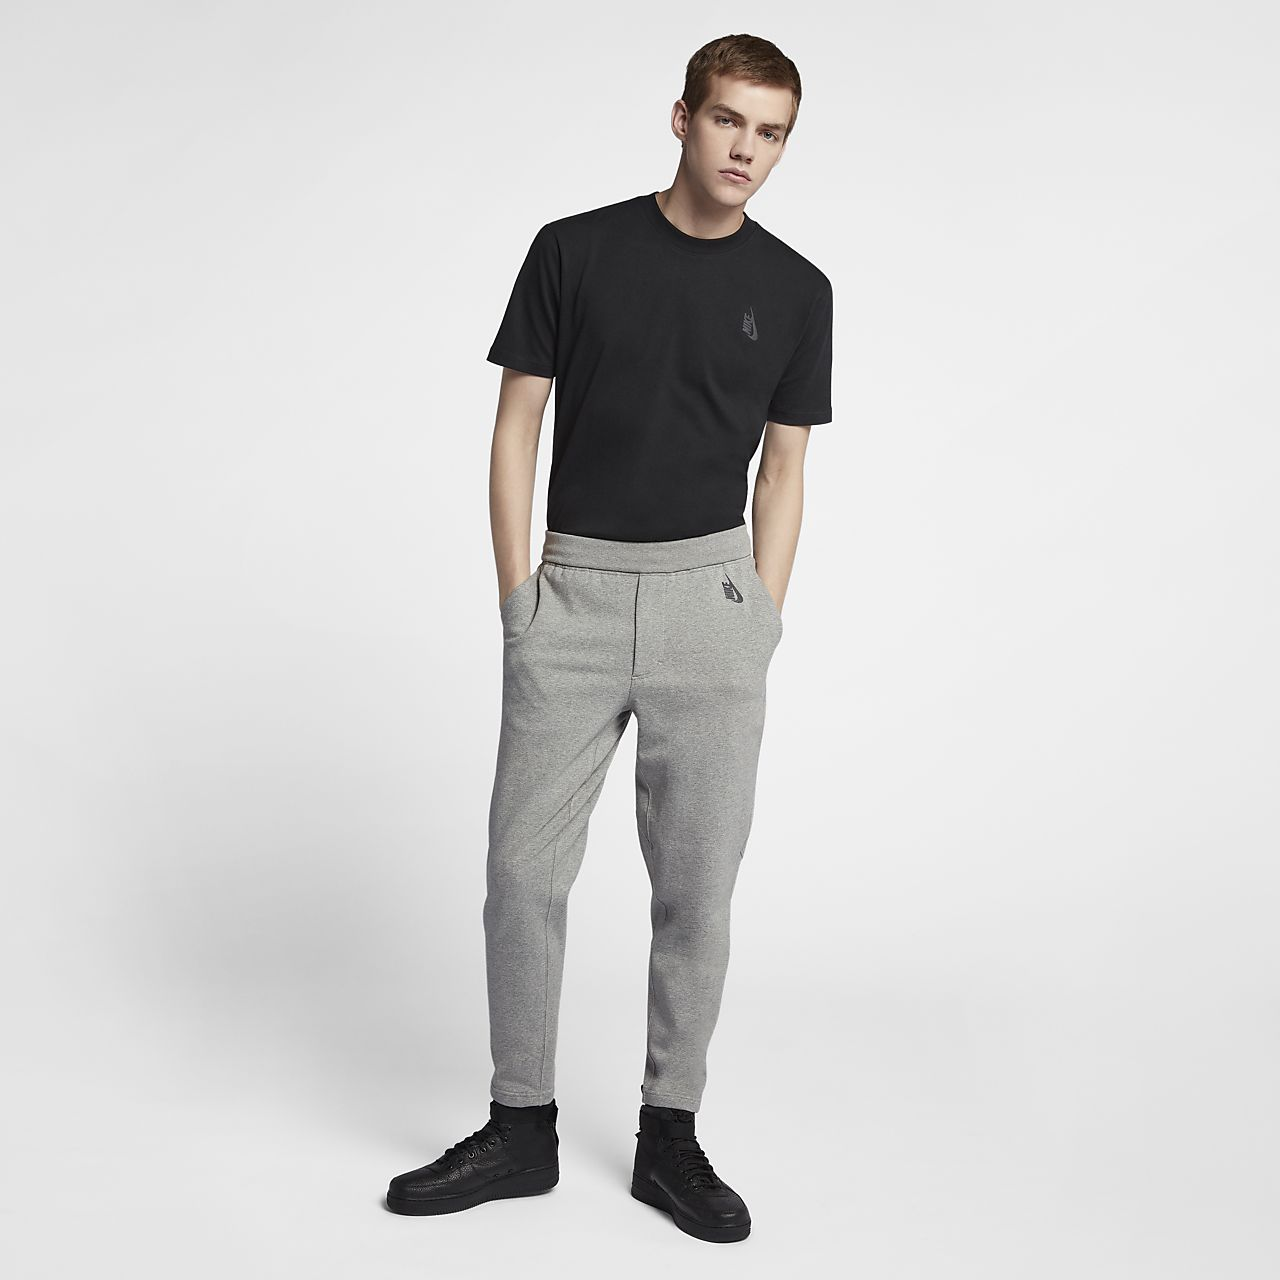 d29eda42b9c1 Low Resolution NikeLab Collection Men s Fleece Pants NikeLab Collection  Men s Fleece Pants